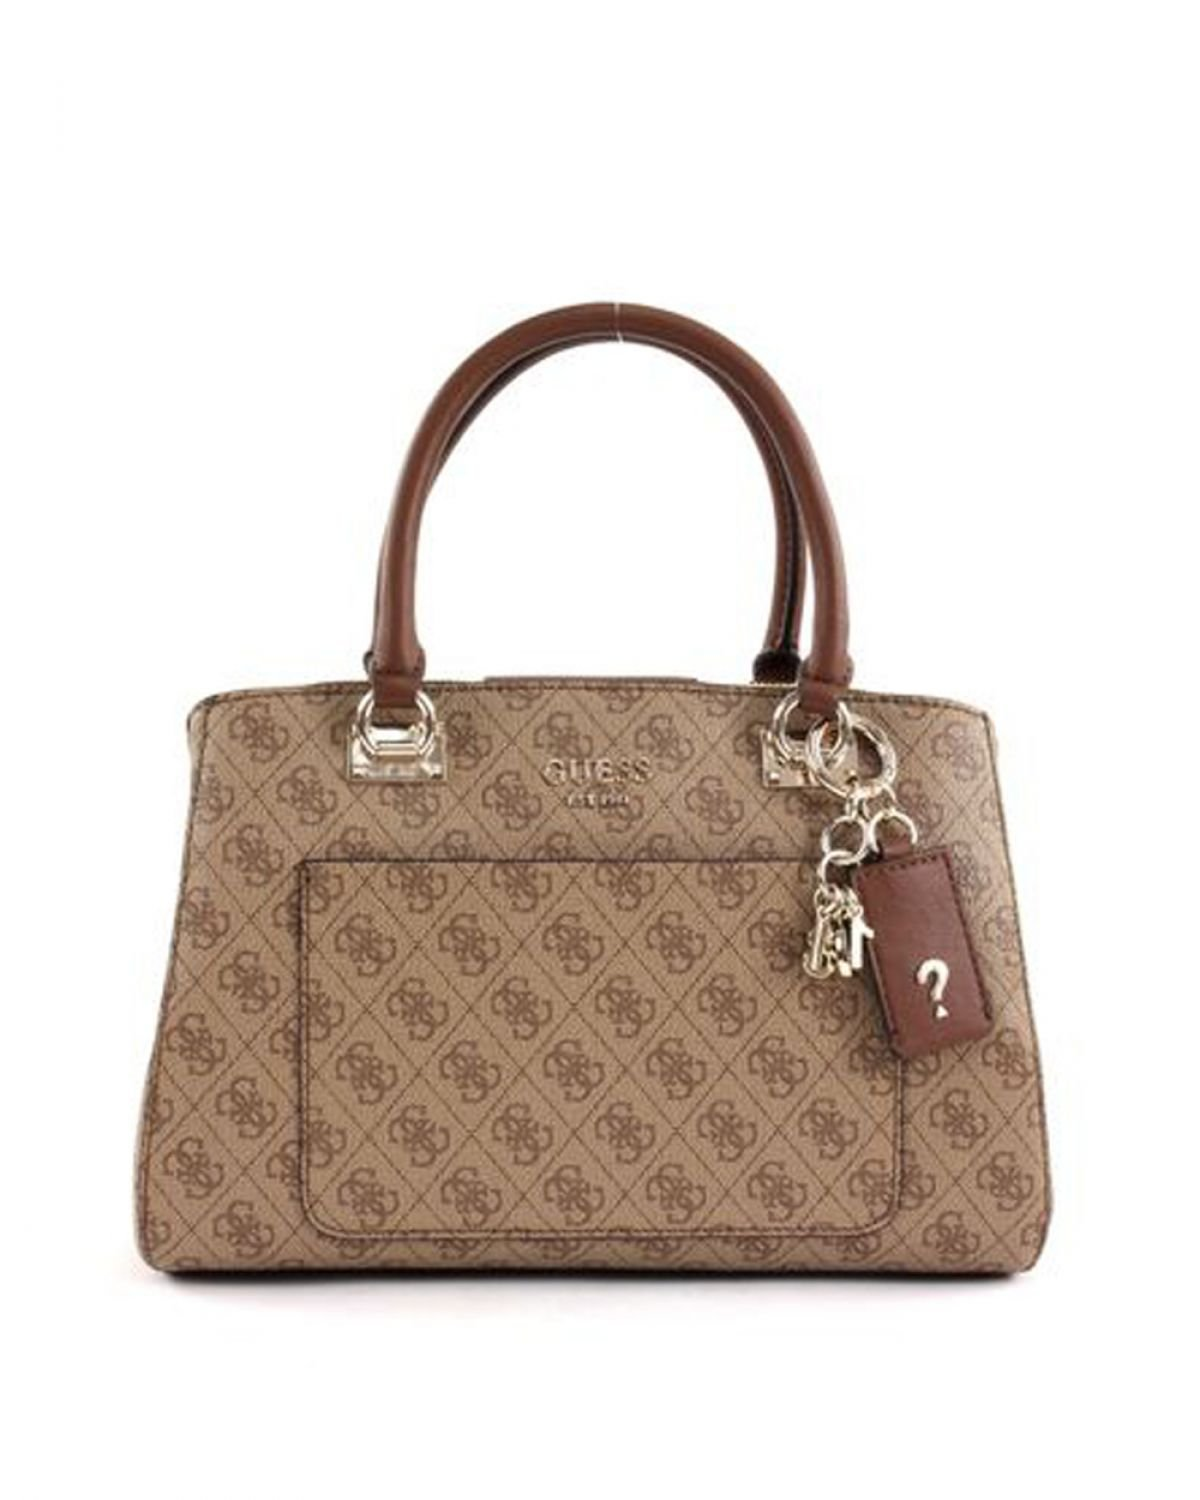 Guess Kathryn Girlfriend Satchel Kadın El Çantası SG717406 Brown - Multi